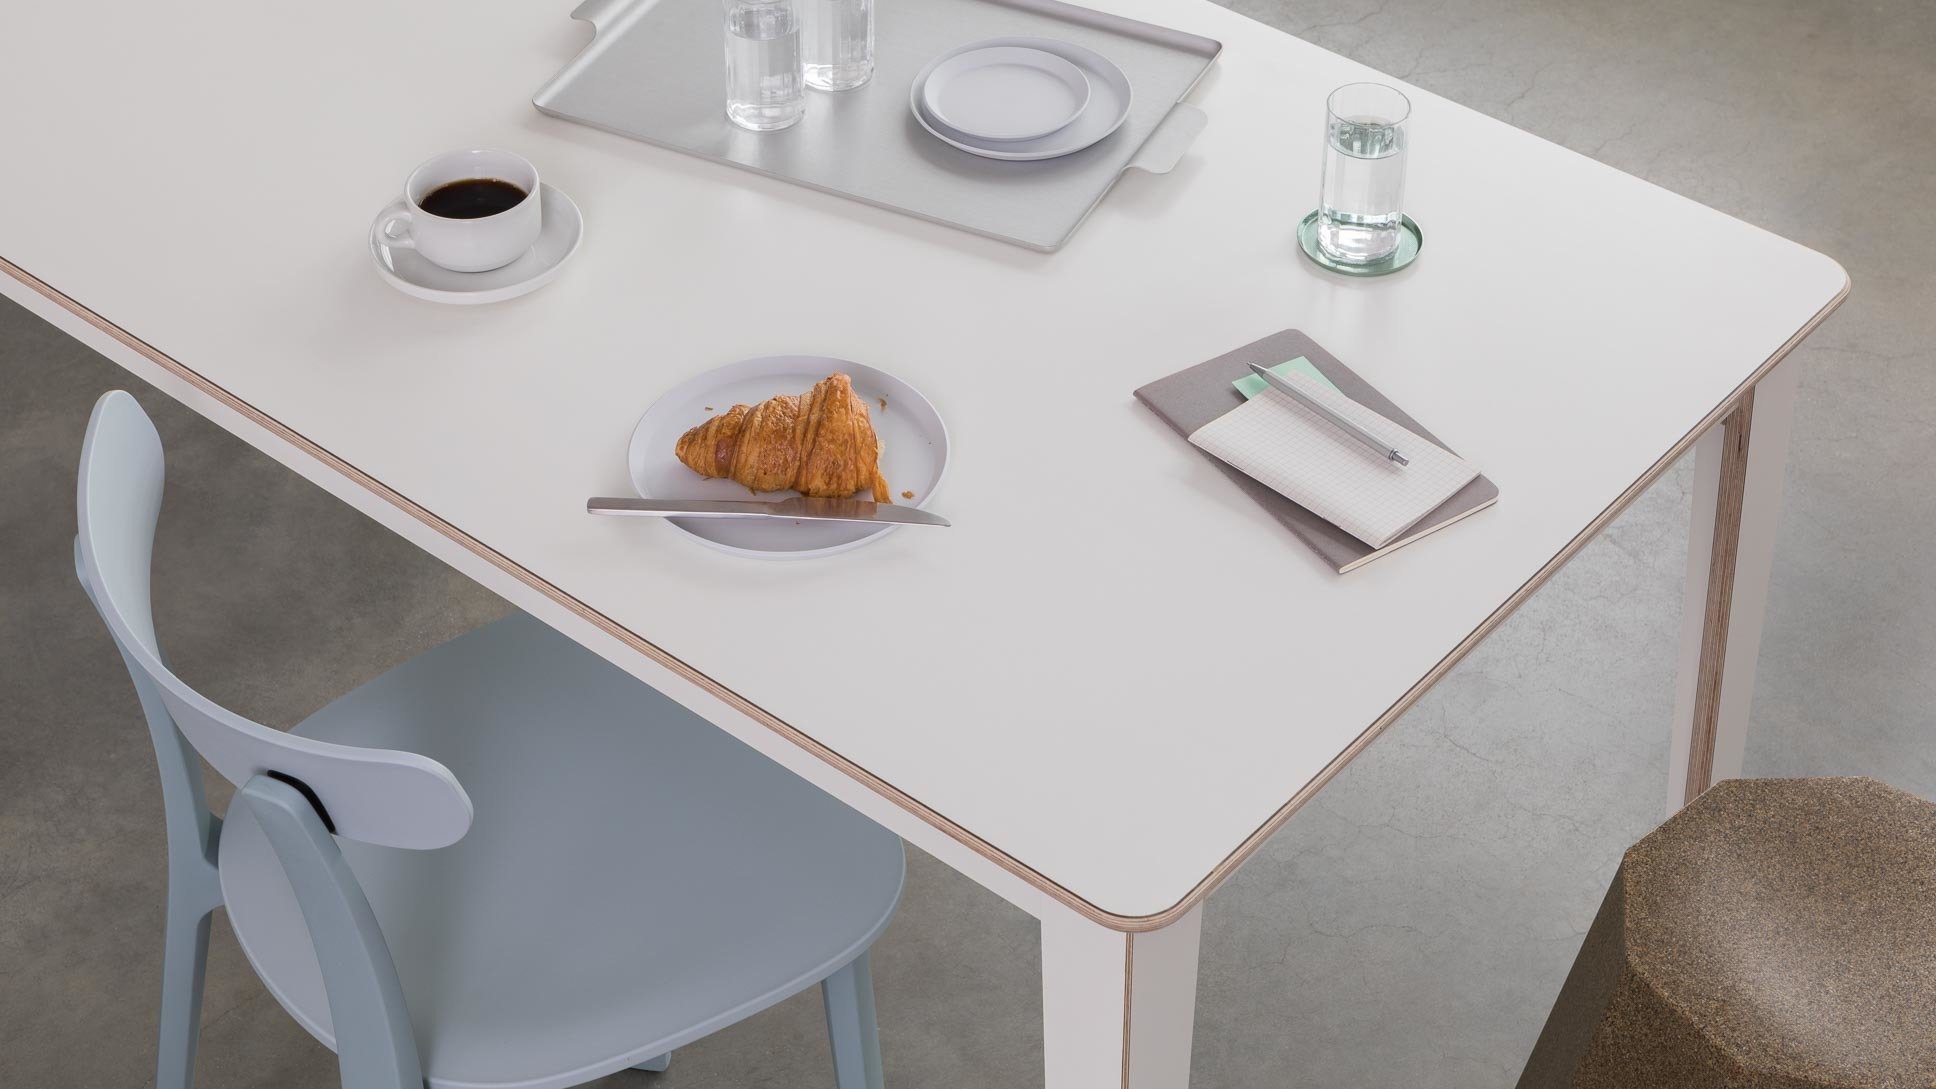 opendesk_furniture_unit-table_product-page_gallery-image-Scene2-6388_jw-edit.jpg